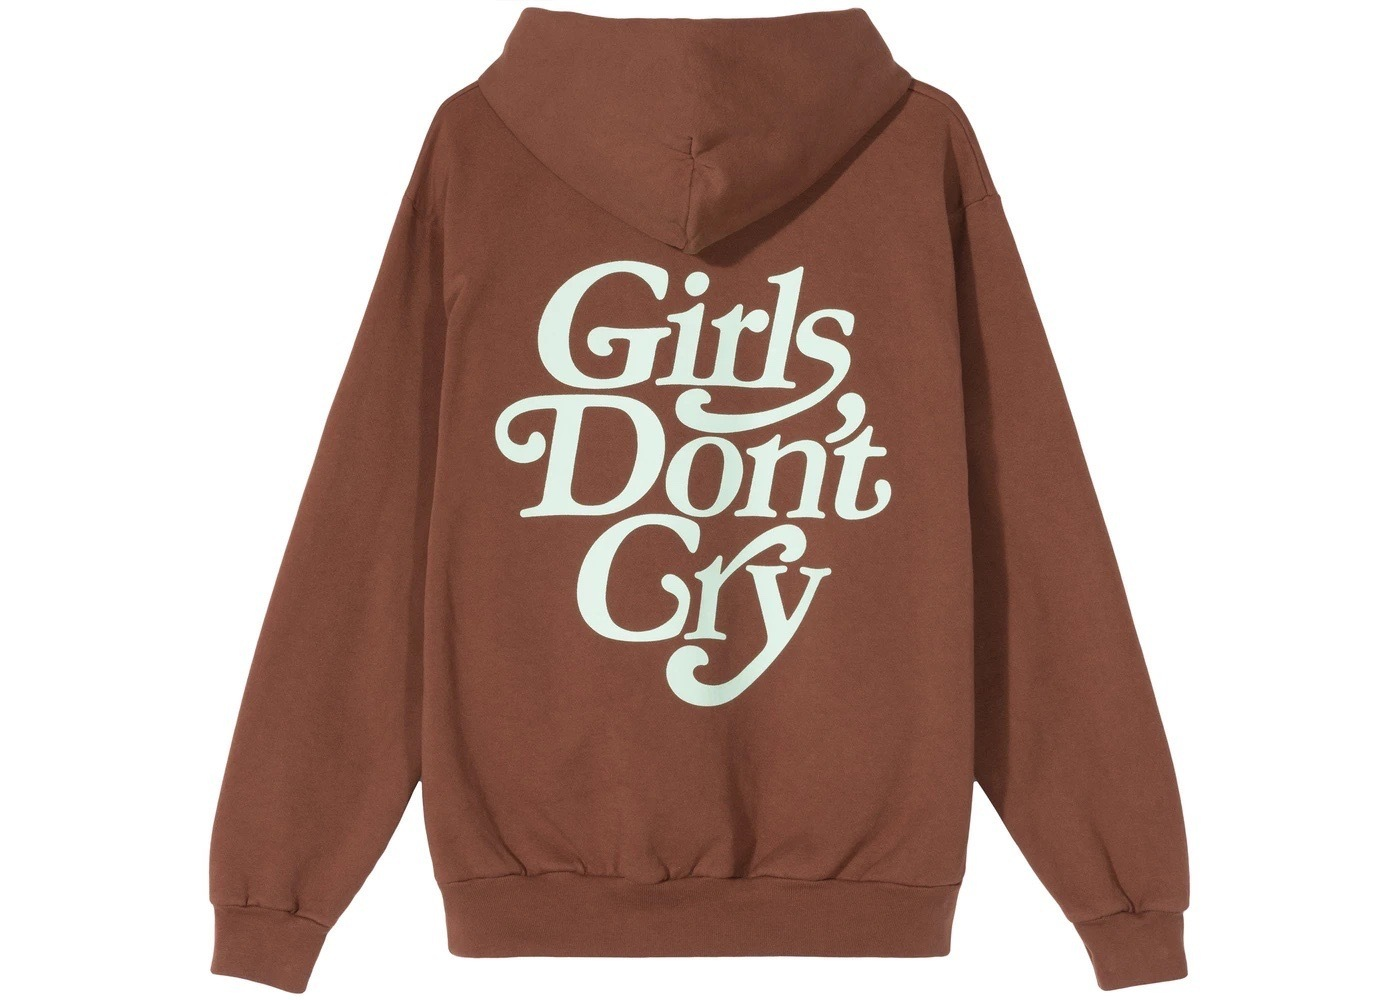 shop girls don't cry clothing